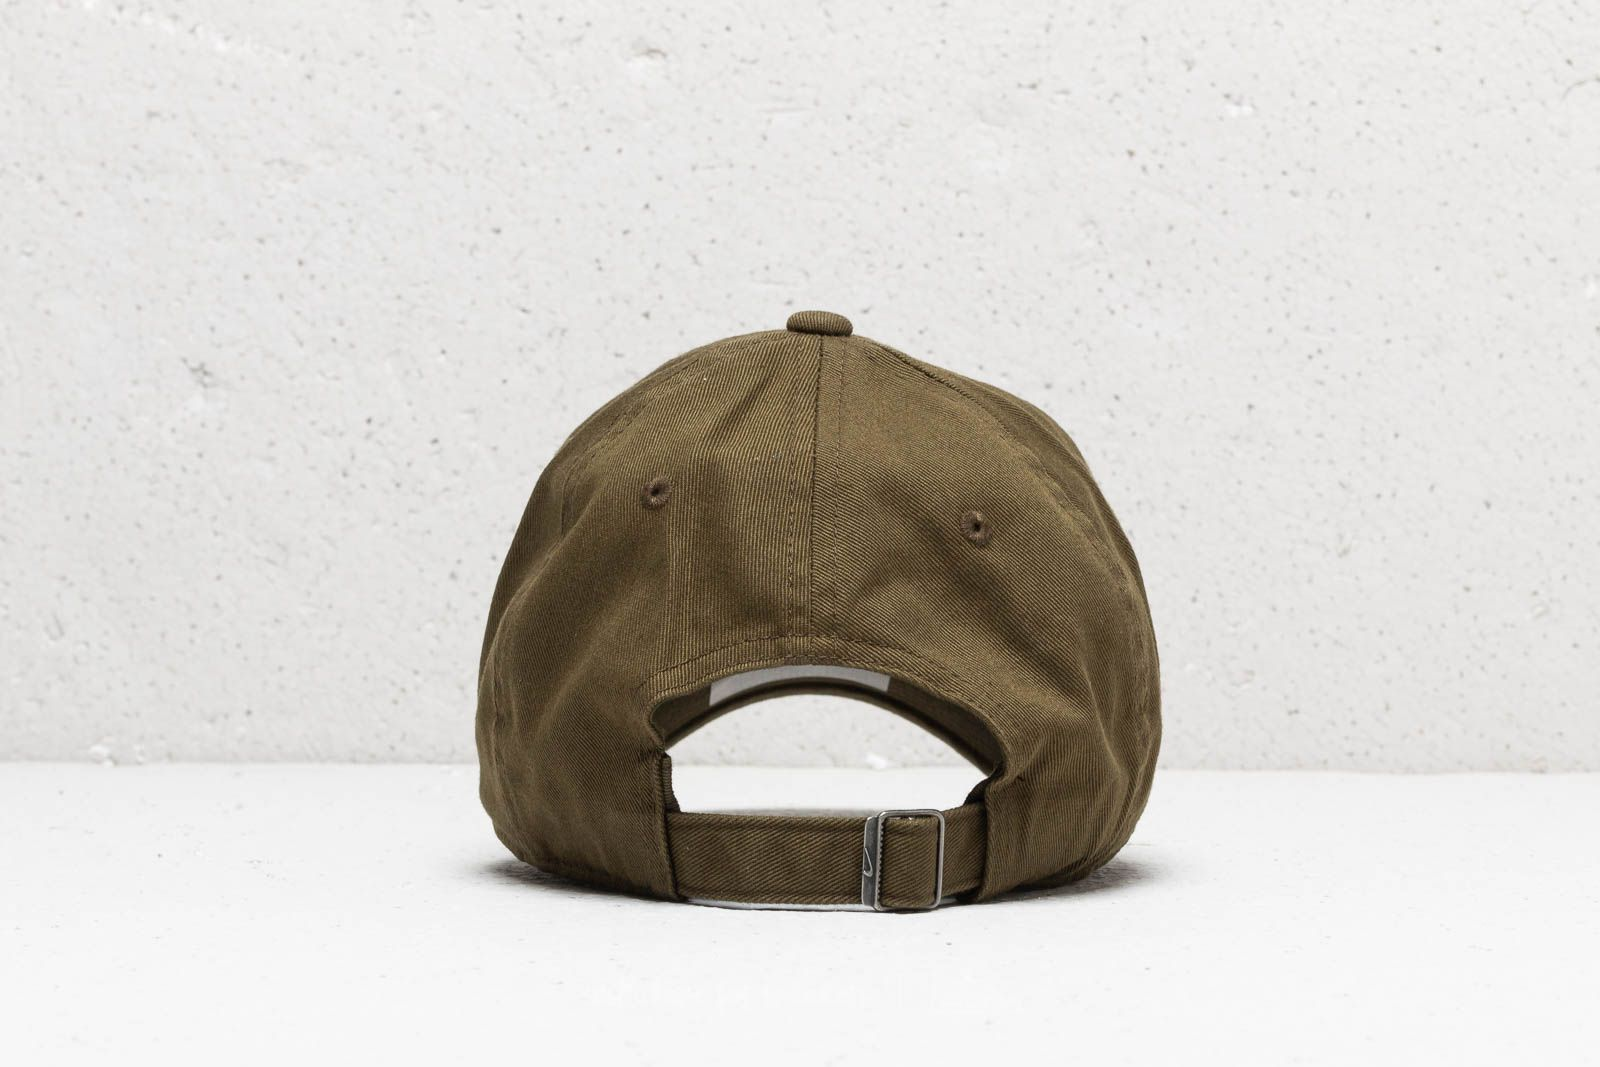 Nike Sportswear Heritage 86 Washed Futura Cap Olive Canvas  White at a  great price 22 45e7b1e53320